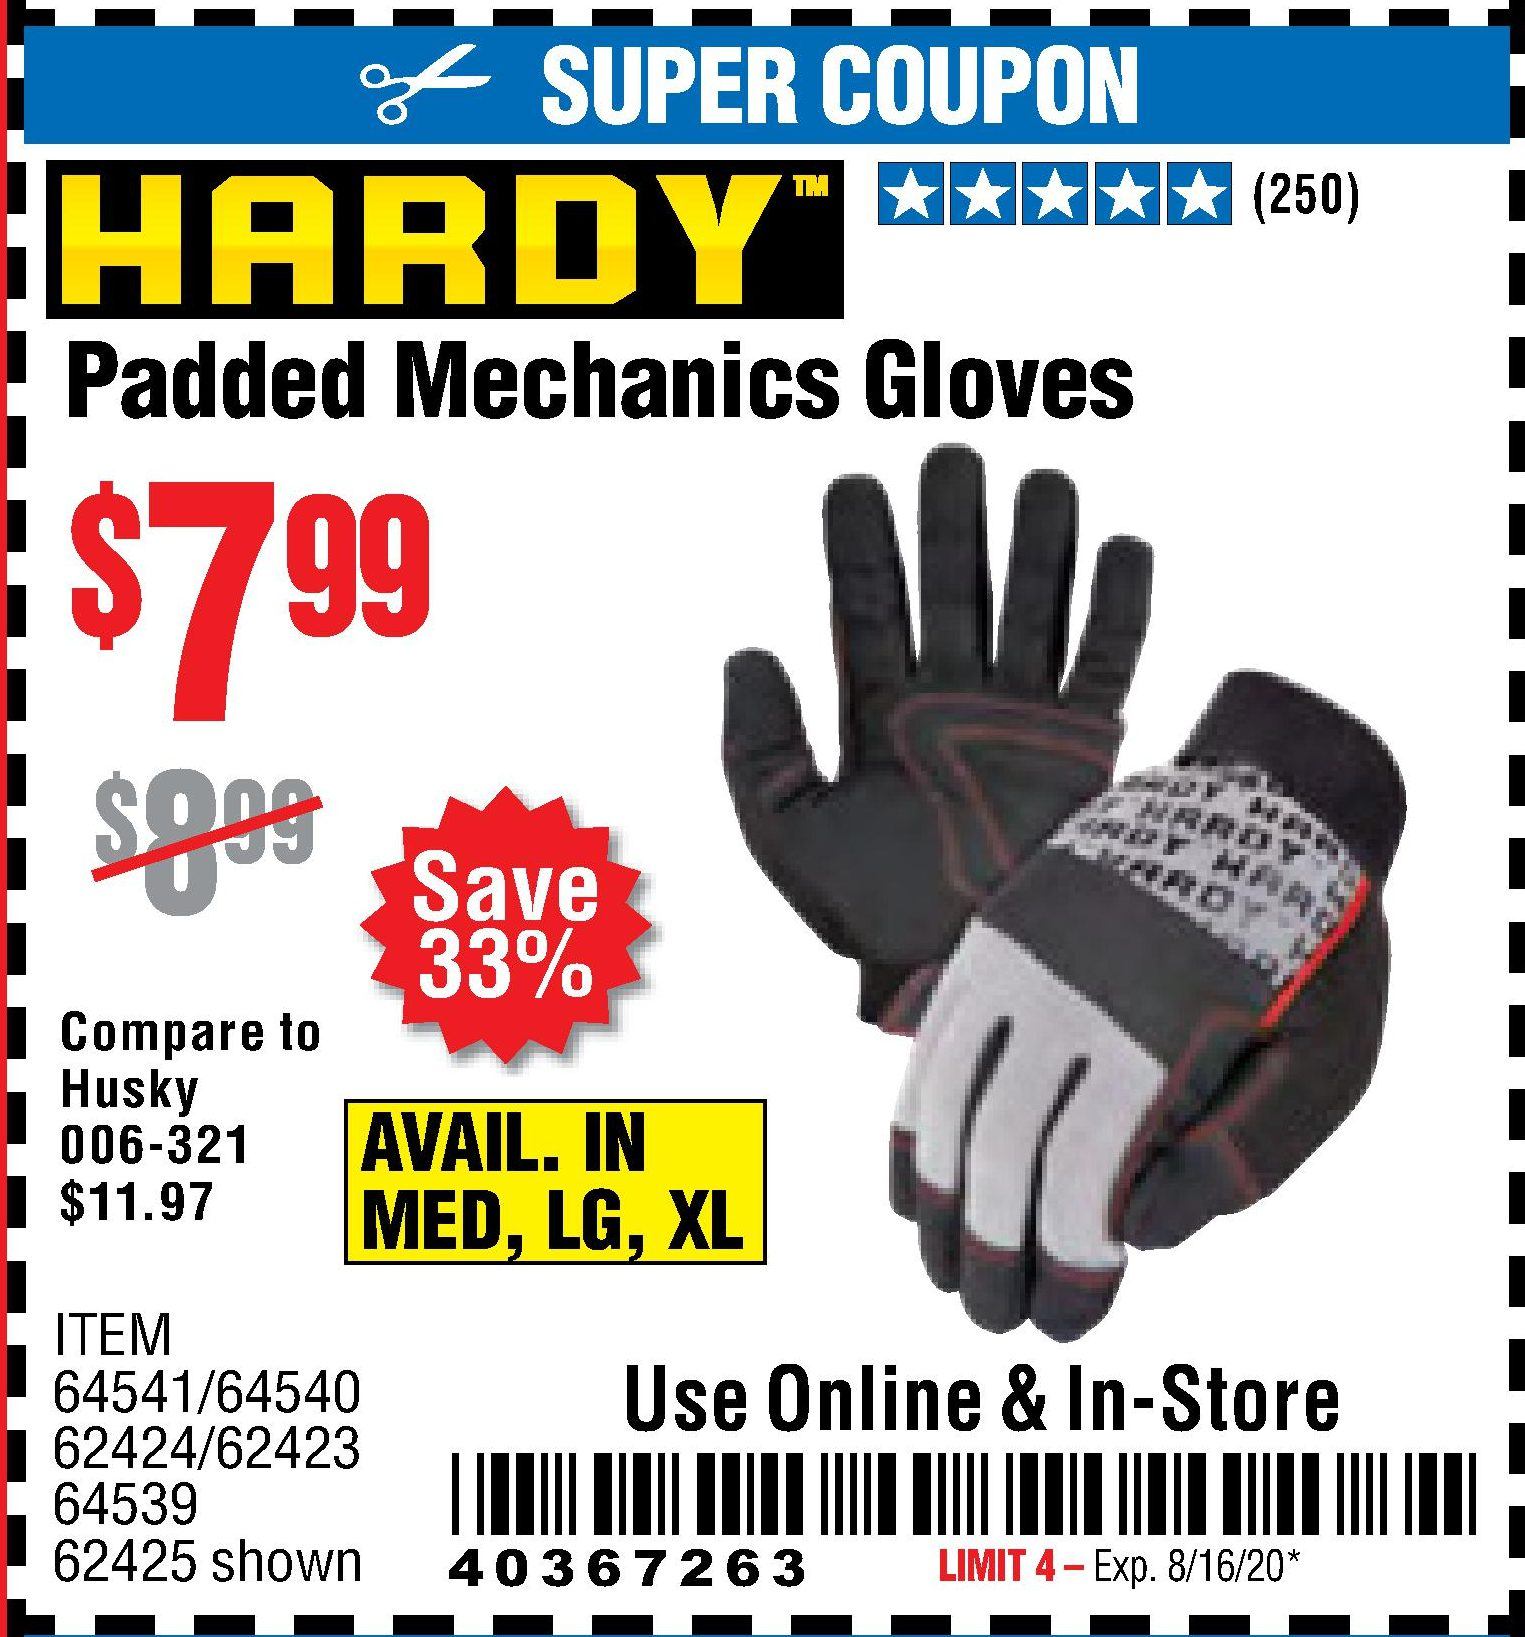 Harbor Freight PADDED MECHANICS GLOVES coupon